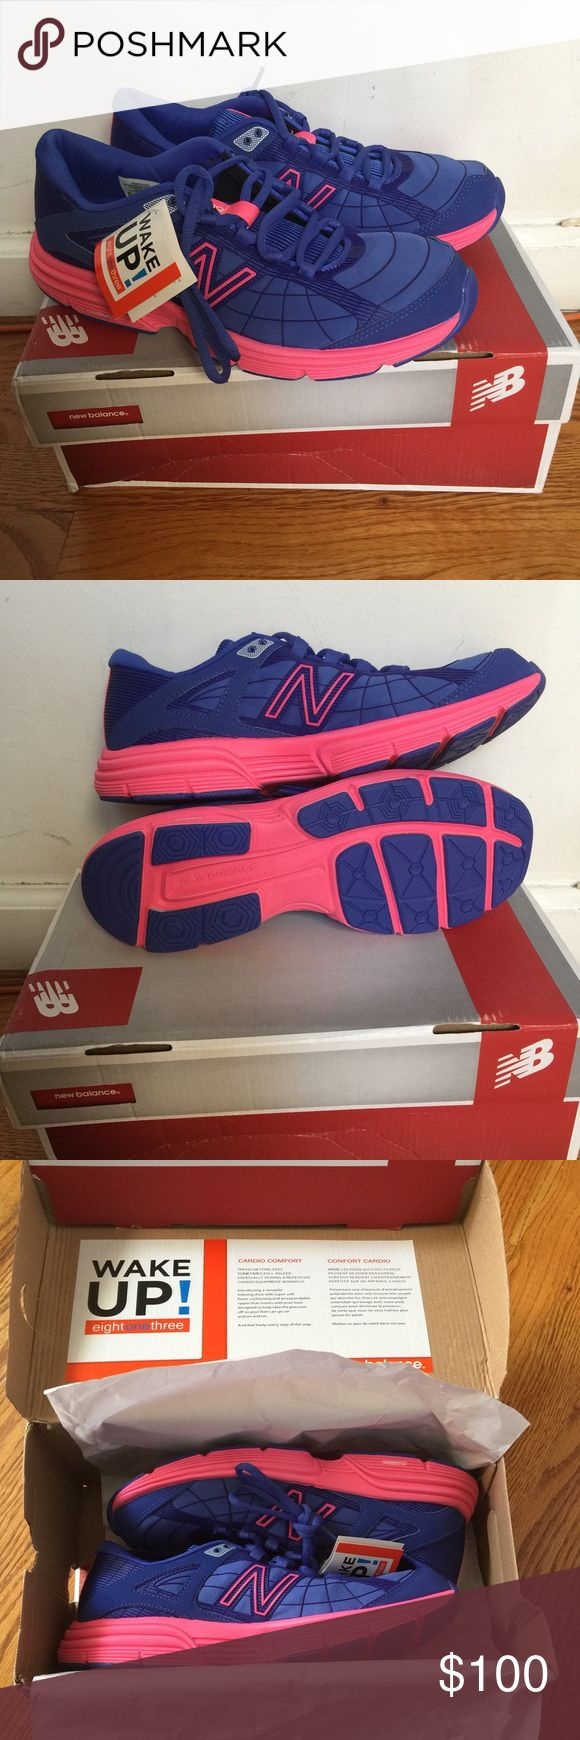 Women's New Balance Cross Training Shoes NIB 9.0 Brand new with tags and box.  Box has some damage (bottom is ripped), but shoes are fine and perfect.  Color is bluish purple.  Material is stretchy like a Spider-Man suit.  Insoles are removeable as needed.  Very soft and comfortable for working out!  Also available in size 9.5 (no box). New Balance Shoes Sneakers